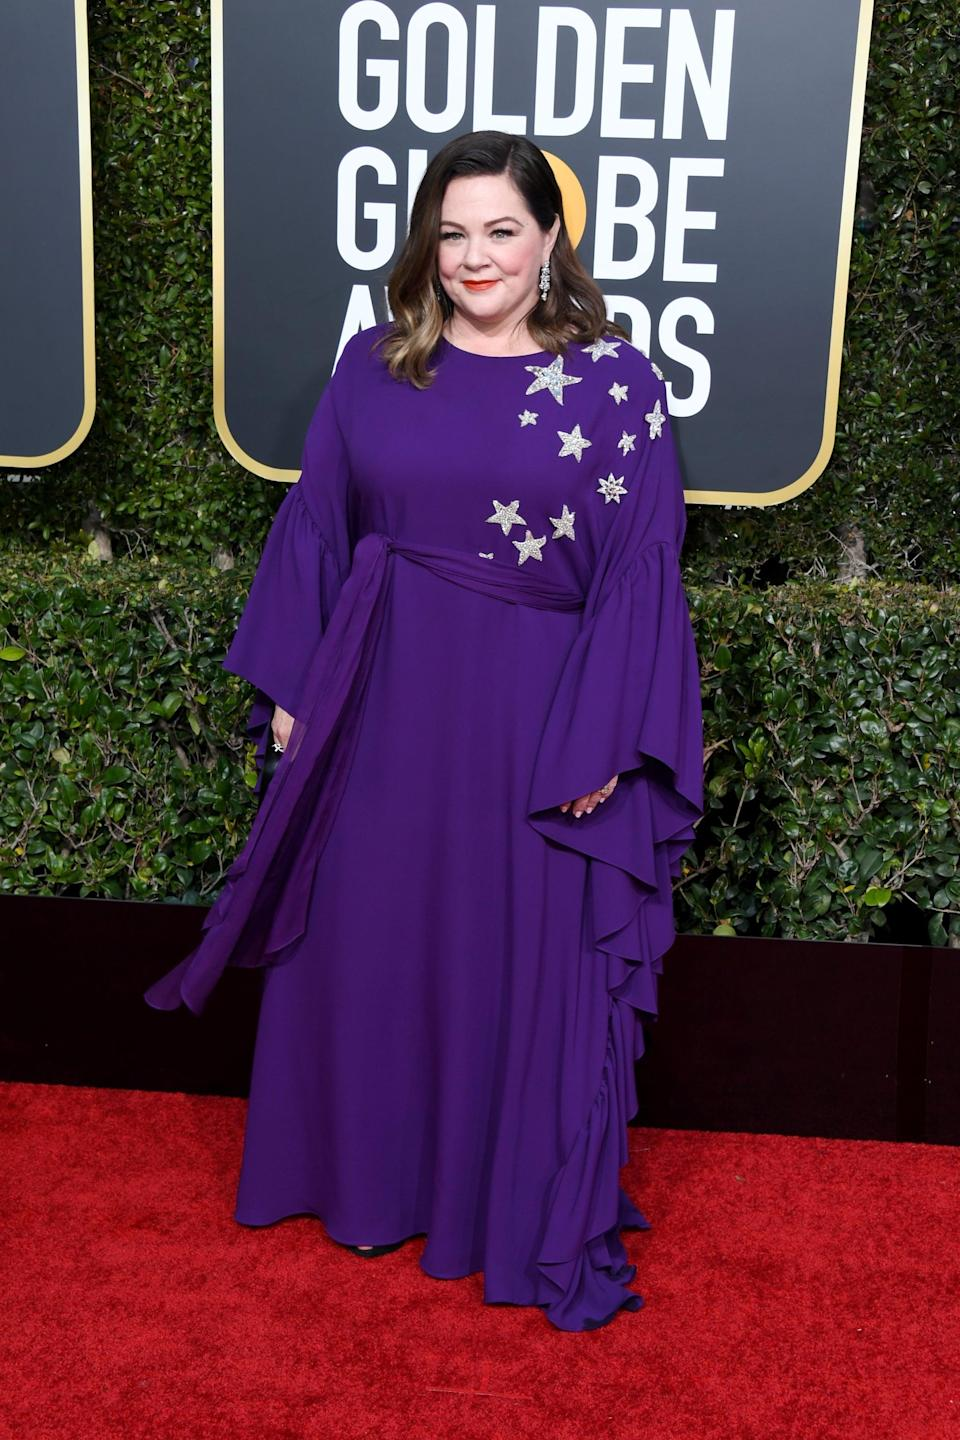 """<p>Wearing a Reem Acra dress <a rel=""""nofollow noopener"""" href=""""https://11honore.com/collections/reem-acra/products/reem-acra-purple-georgette-caftan-with-ruffle"""" target=""""_blank"""" data-ylk=""""slk:that's available at 11 Honoré"""" class=""""link rapid-noclick-resp"""">that's available at 11 Honoré</a> with Chopard jewels.</p>"""